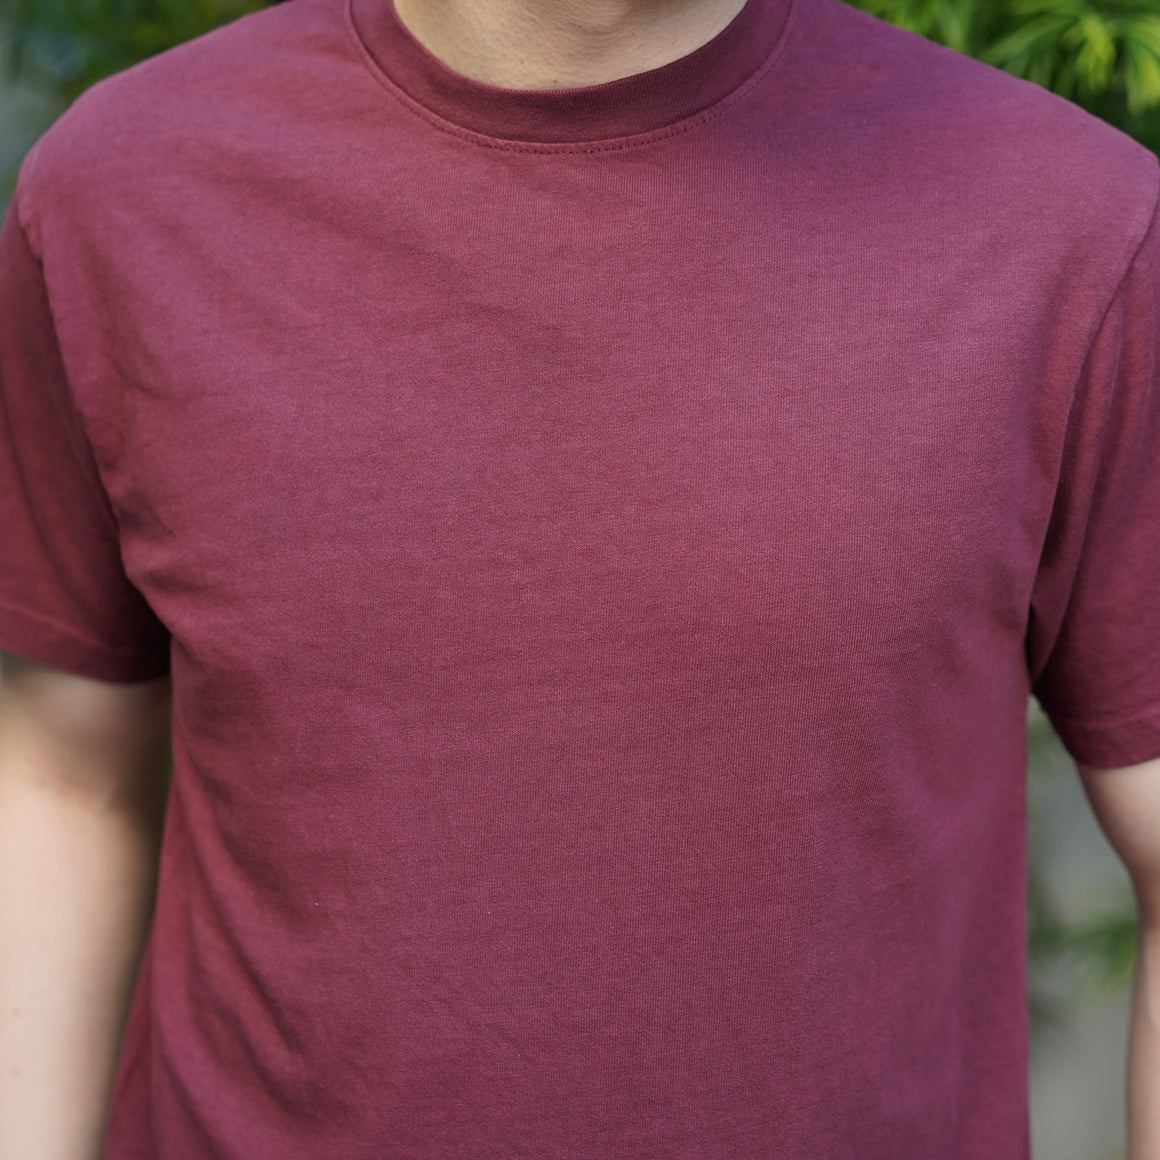 Extra Heavyweight T-Shirt Short Sleeve in Currant